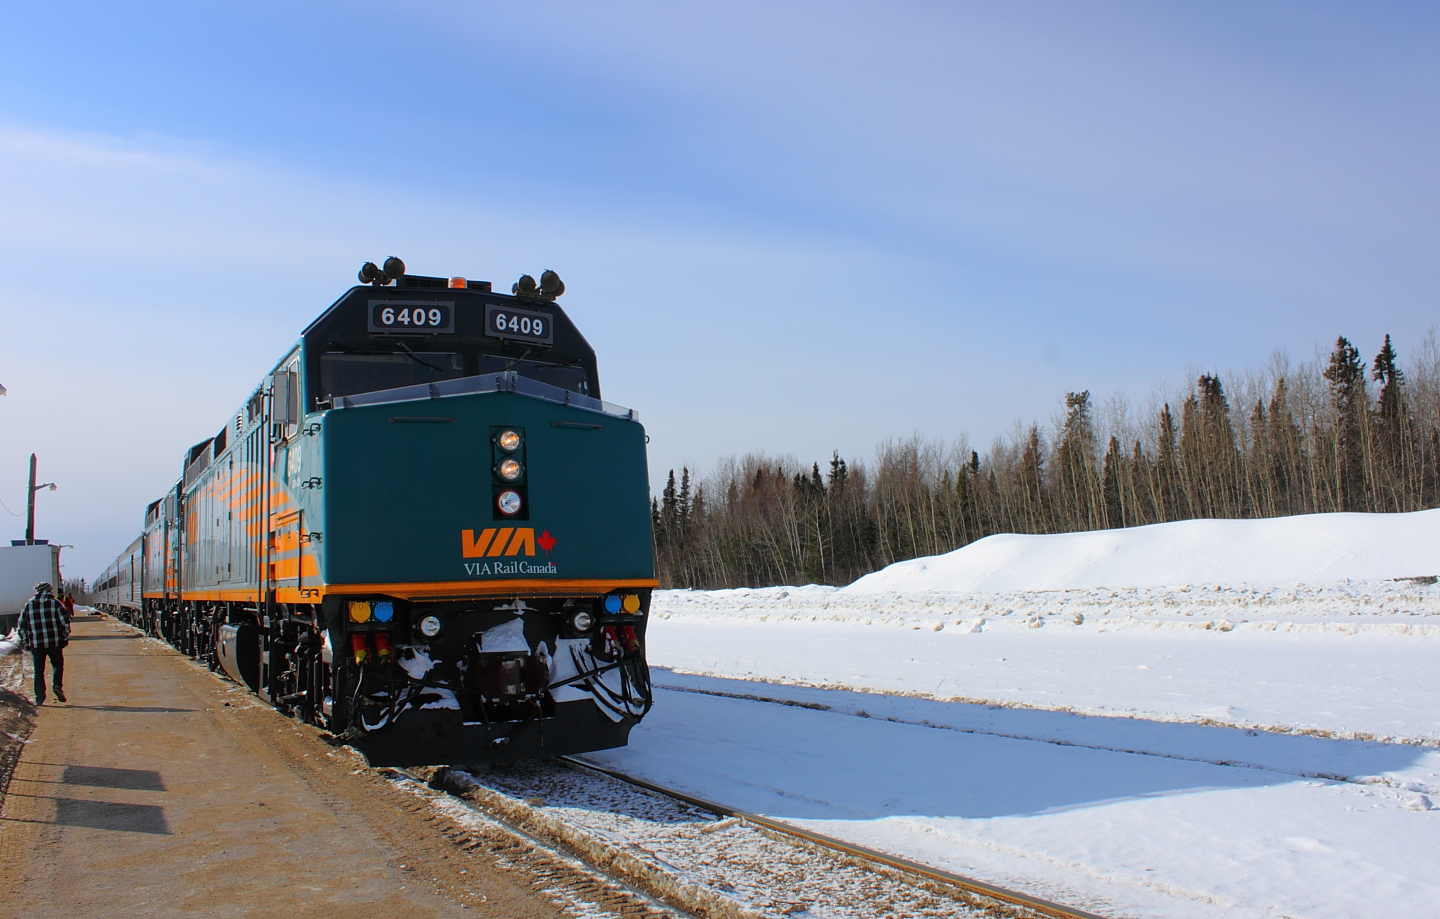 VIA 6409 in Thompson, MB 2012/03/07